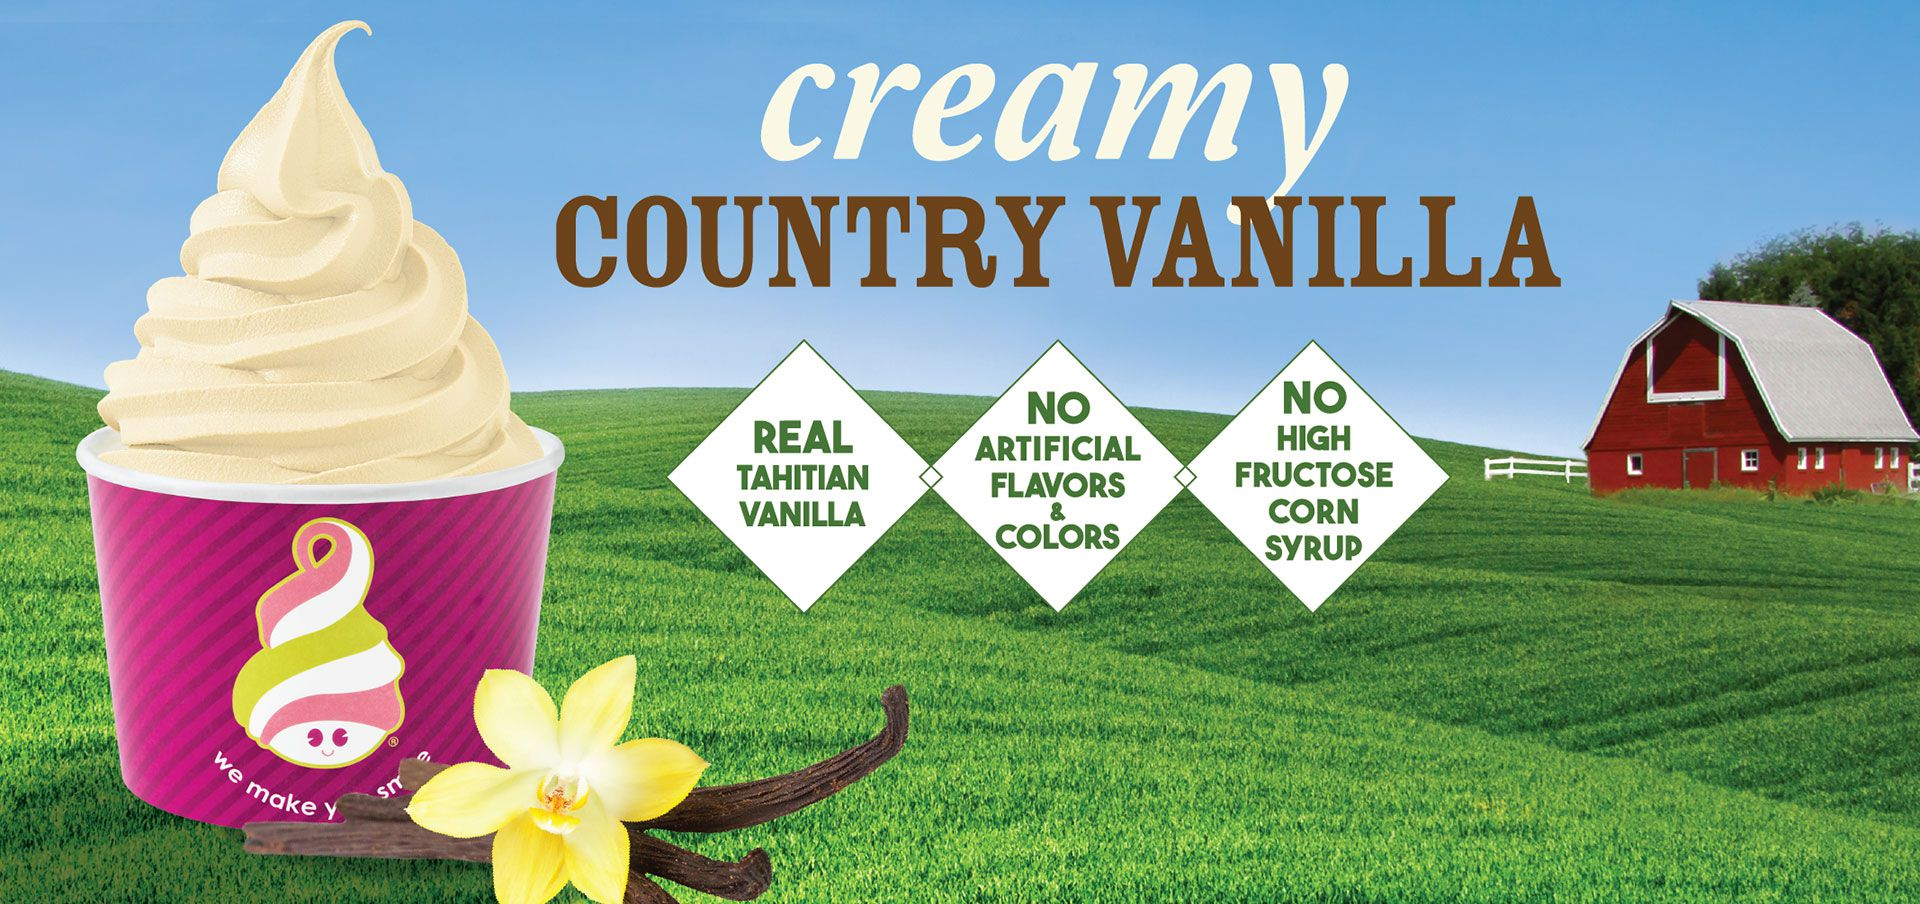 creamy country vanilla label image